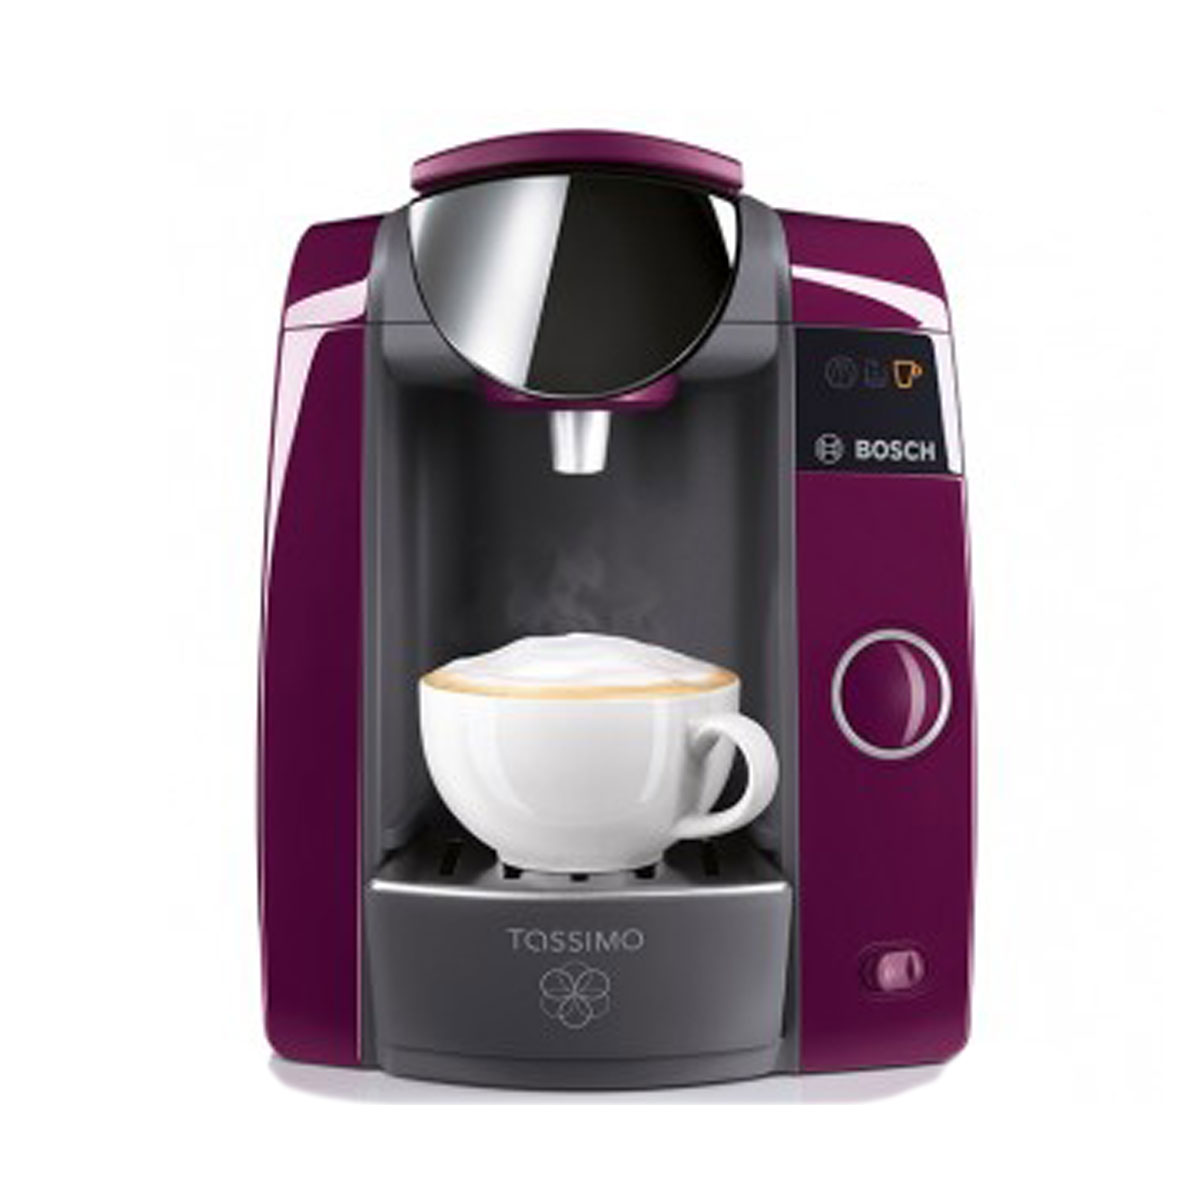 bosch tassimo joy t43 purple coffee machine tas4301gb around the clock offers. Black Bedroom Furniture Sets. Home Design Ideas